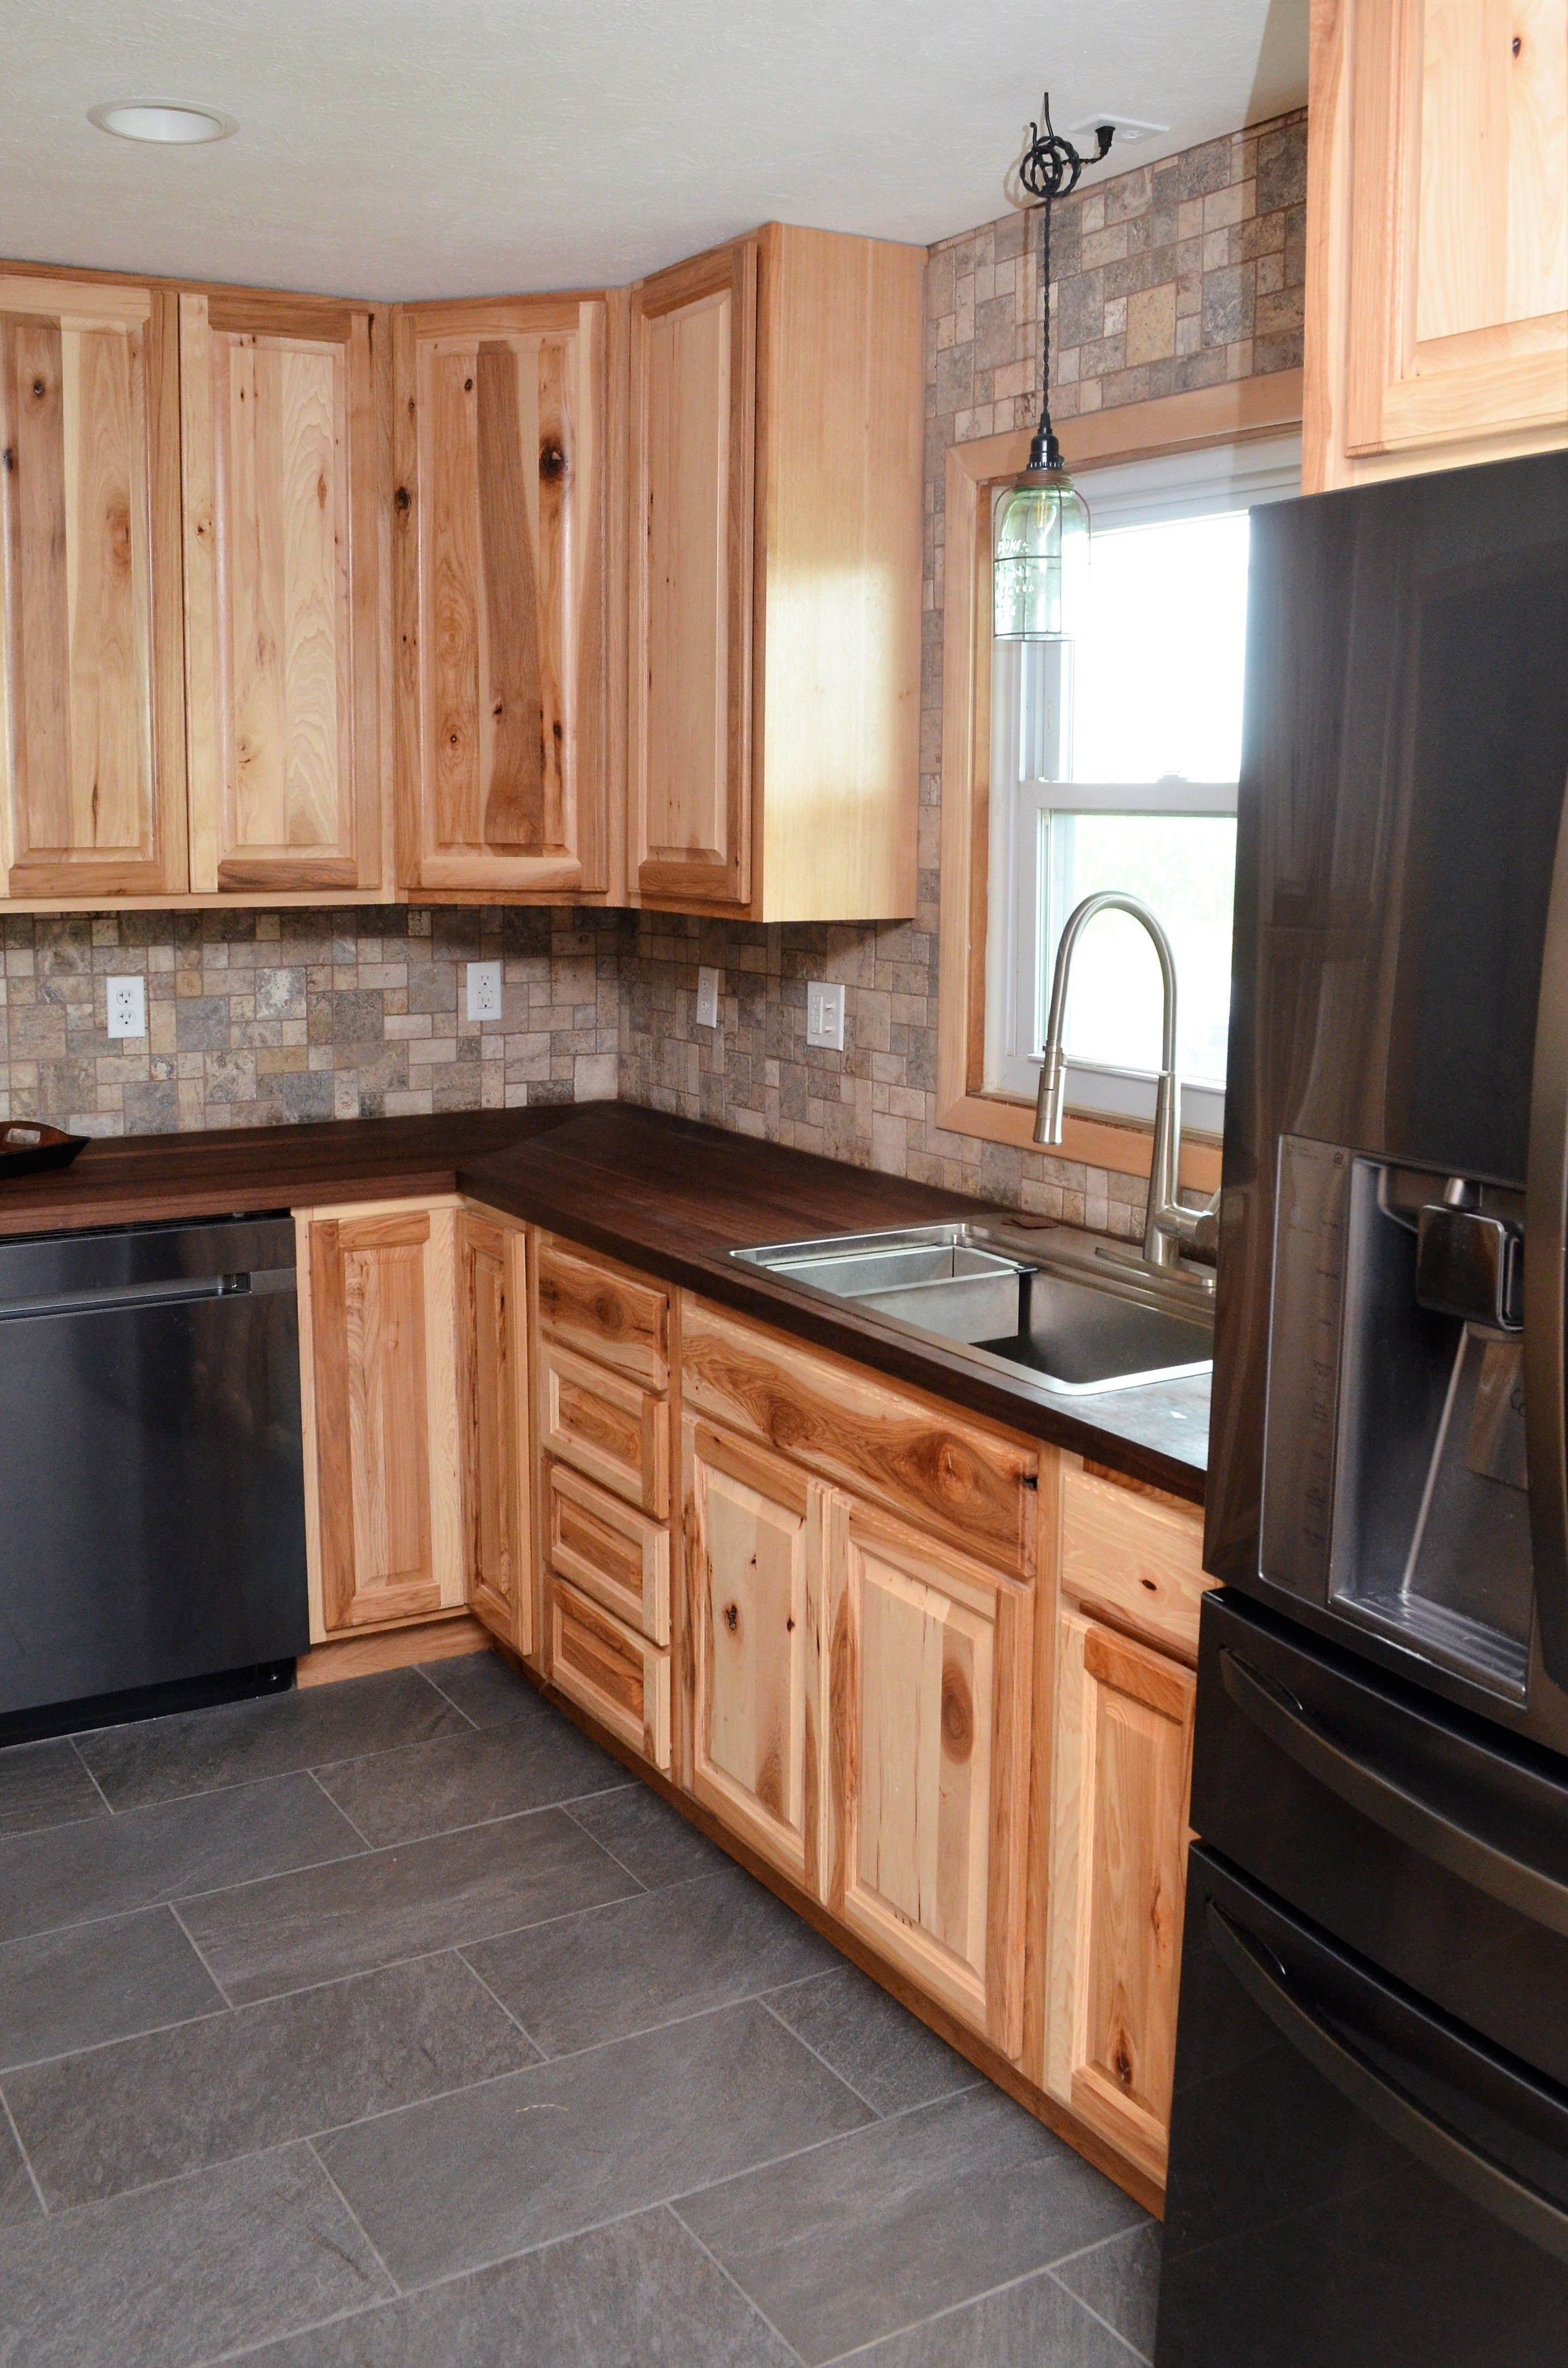 Hickory Cabinet Doors 2020 In 2020 Beautiful Kitchen Cabinets Rustic Hickory Cabinets Hickory Kitchen